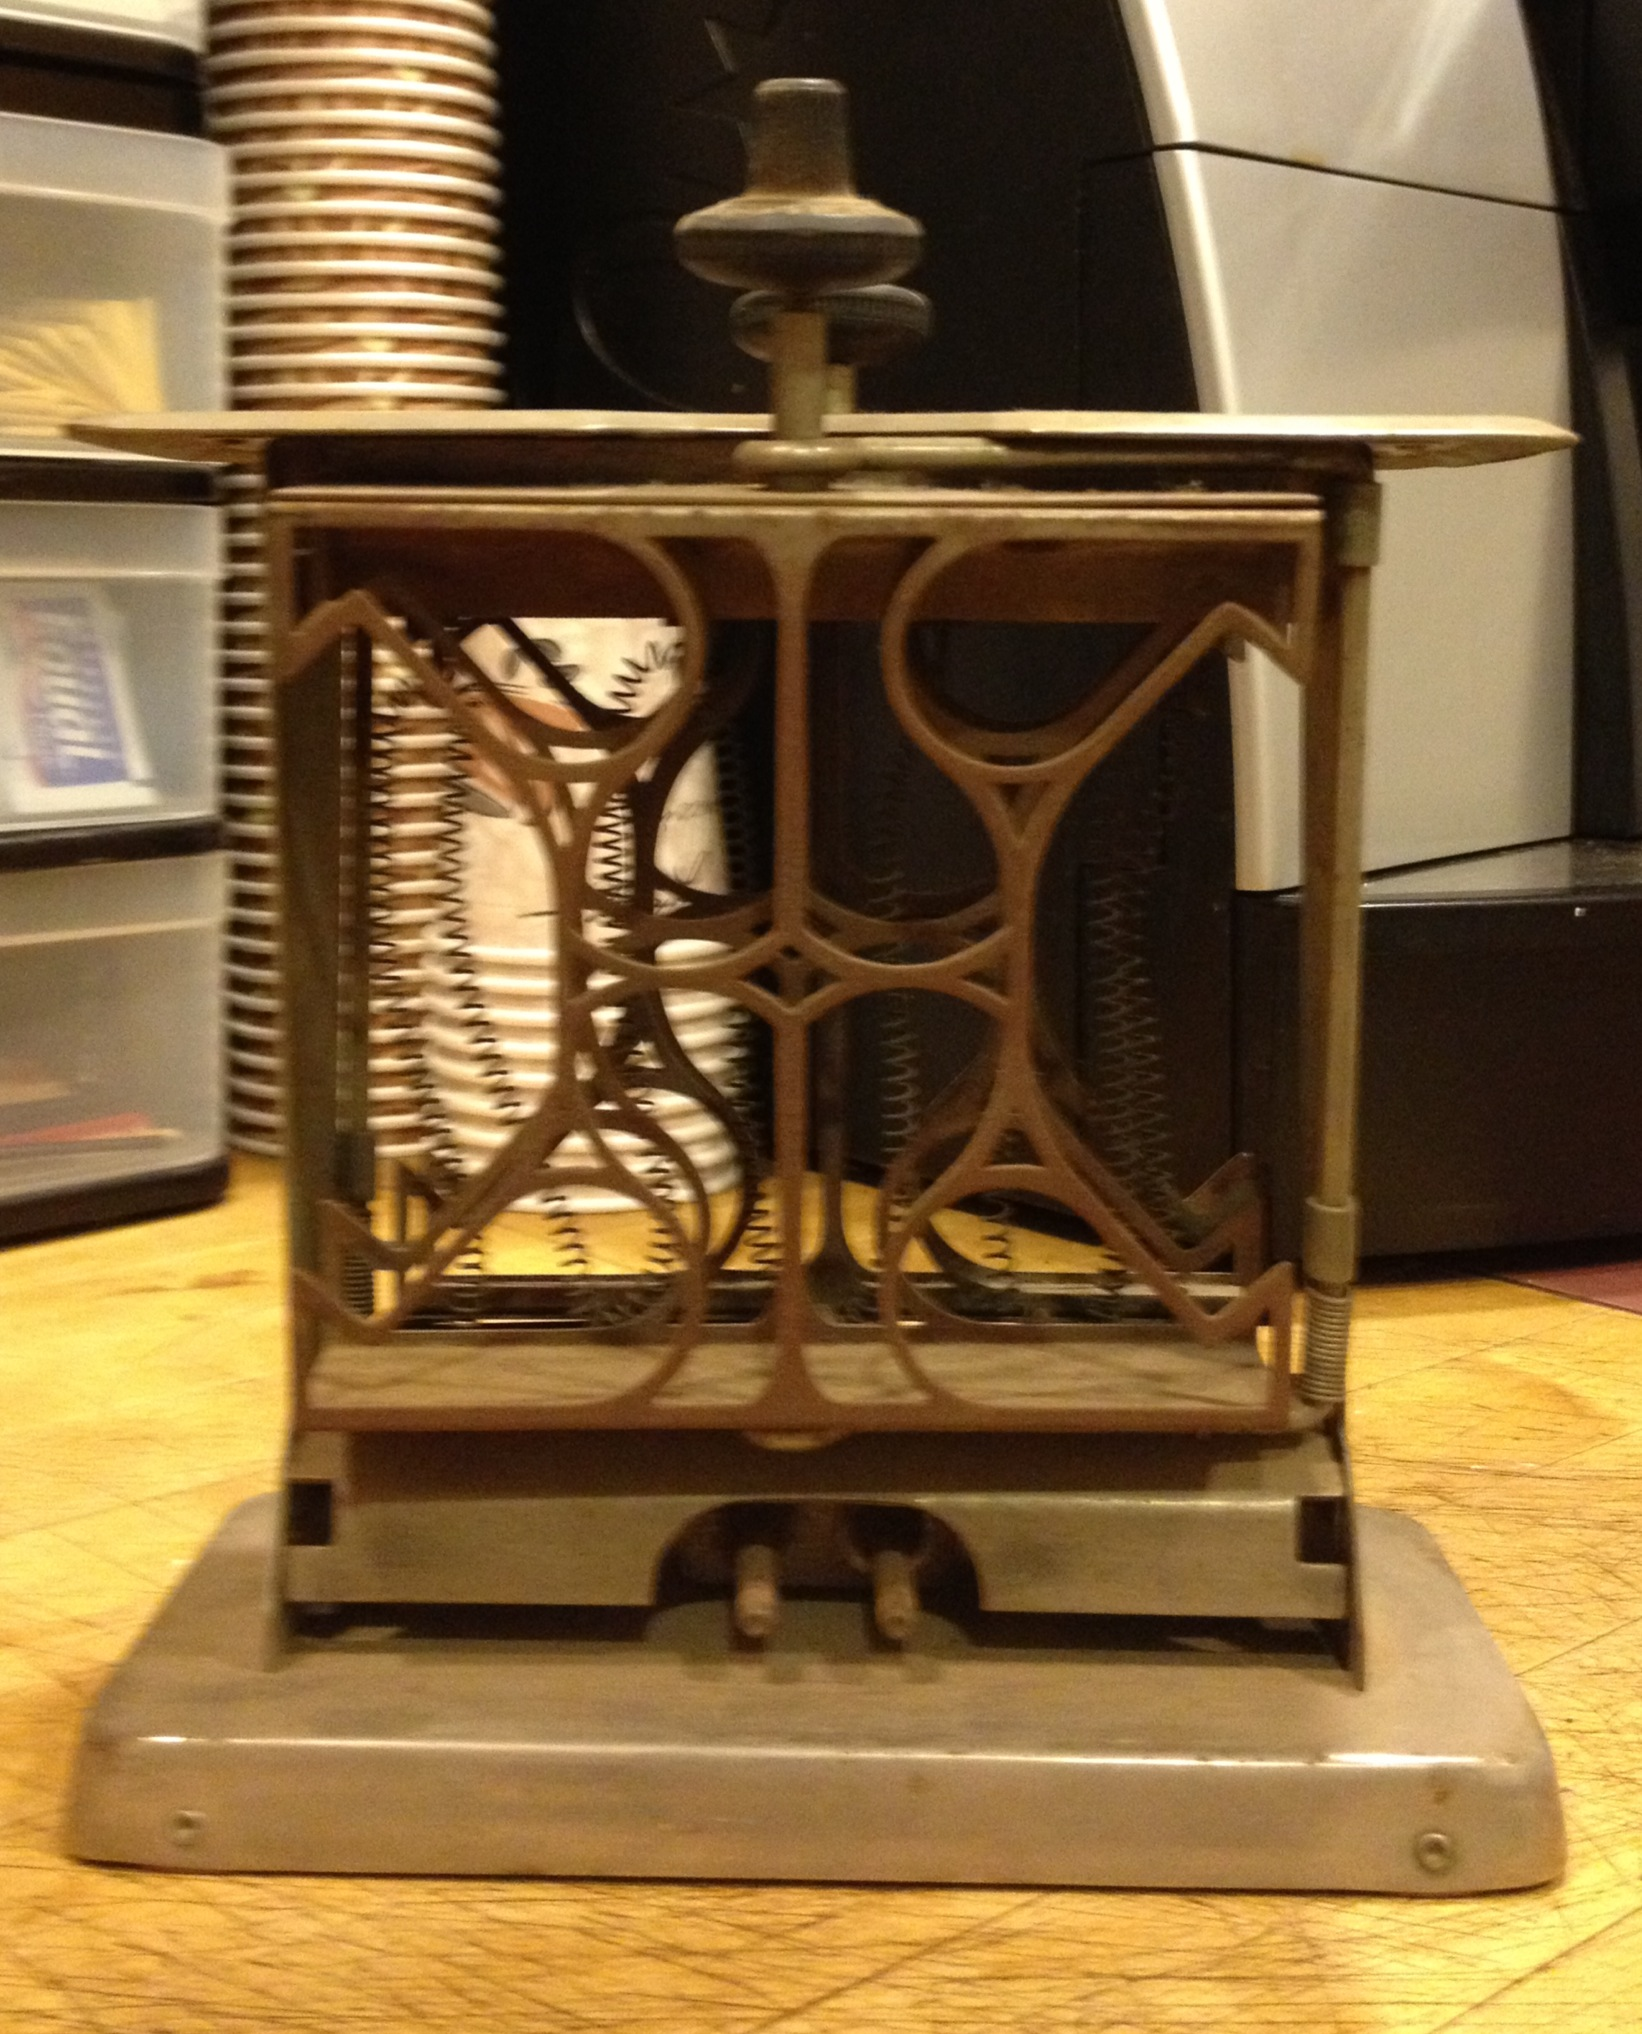 from Claire: 1920s electric toaster, made in Torrington, CT